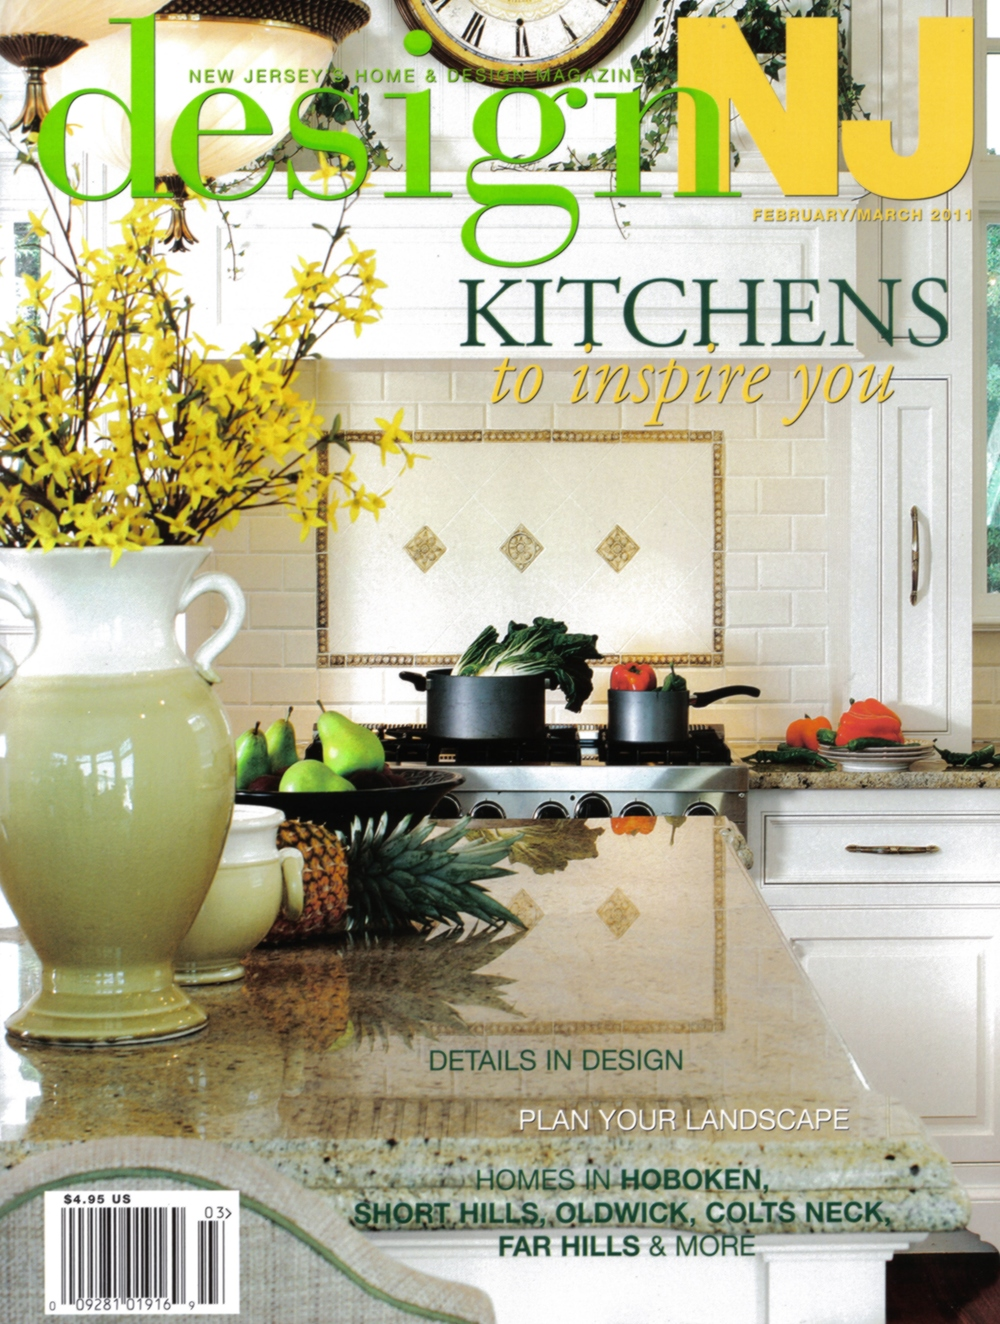 Design_NJ_cover_feb_mar_2011_hi_res.jpg